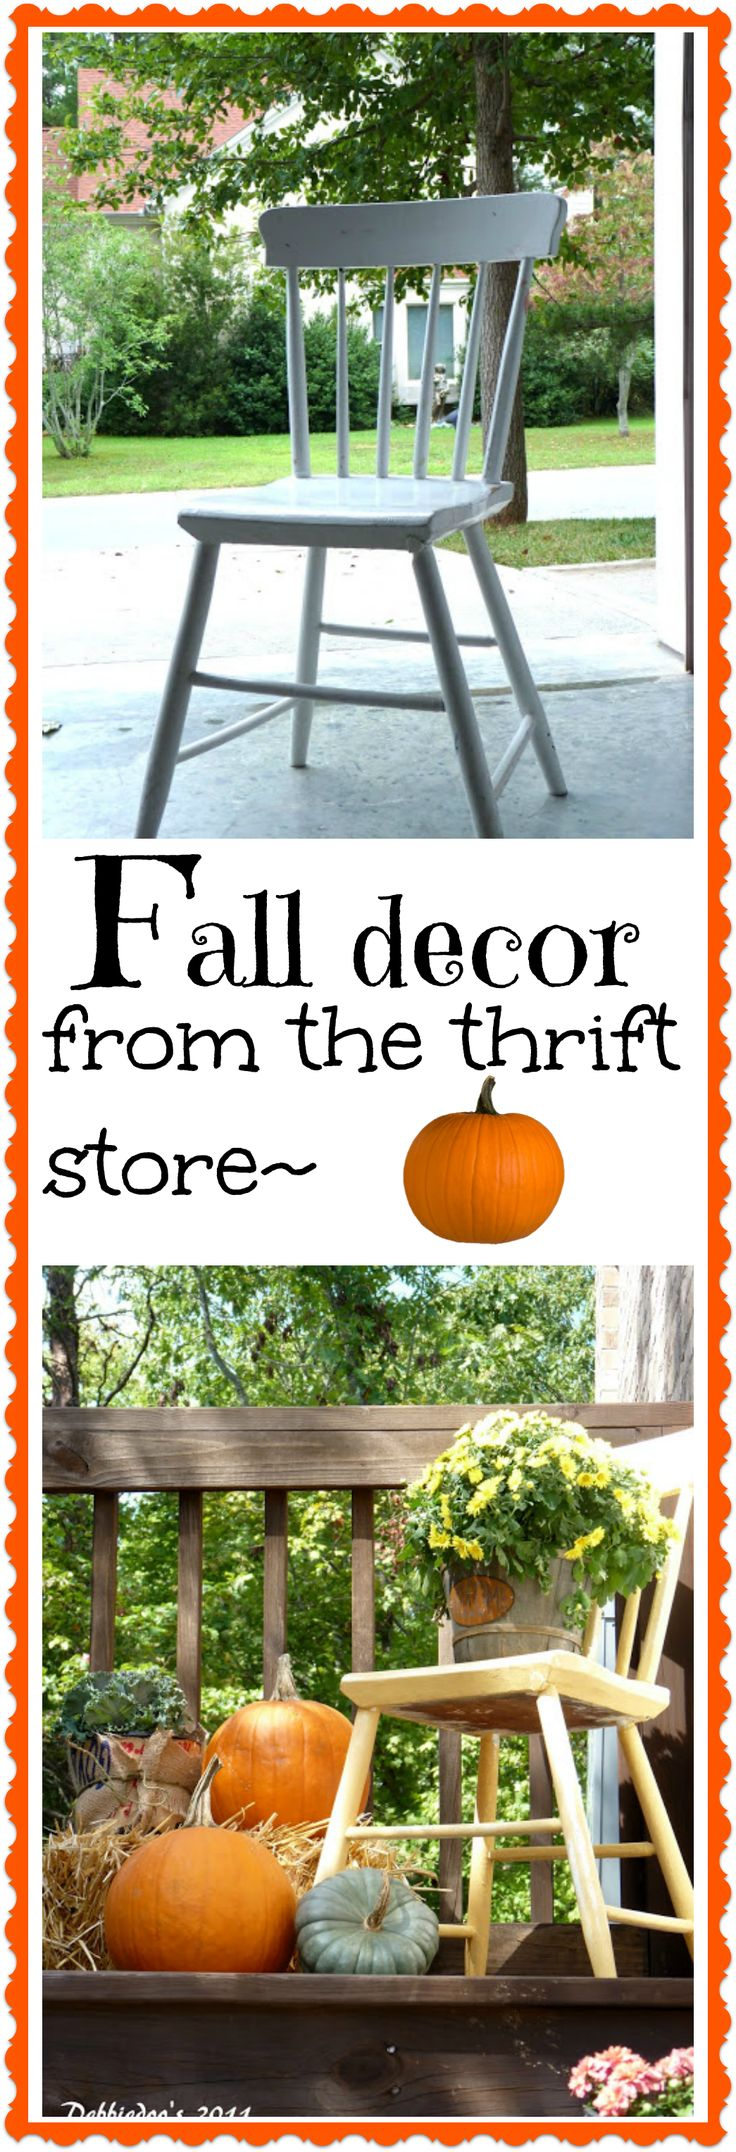 Fall decorating outdoors. With a thrift store chair makeover.